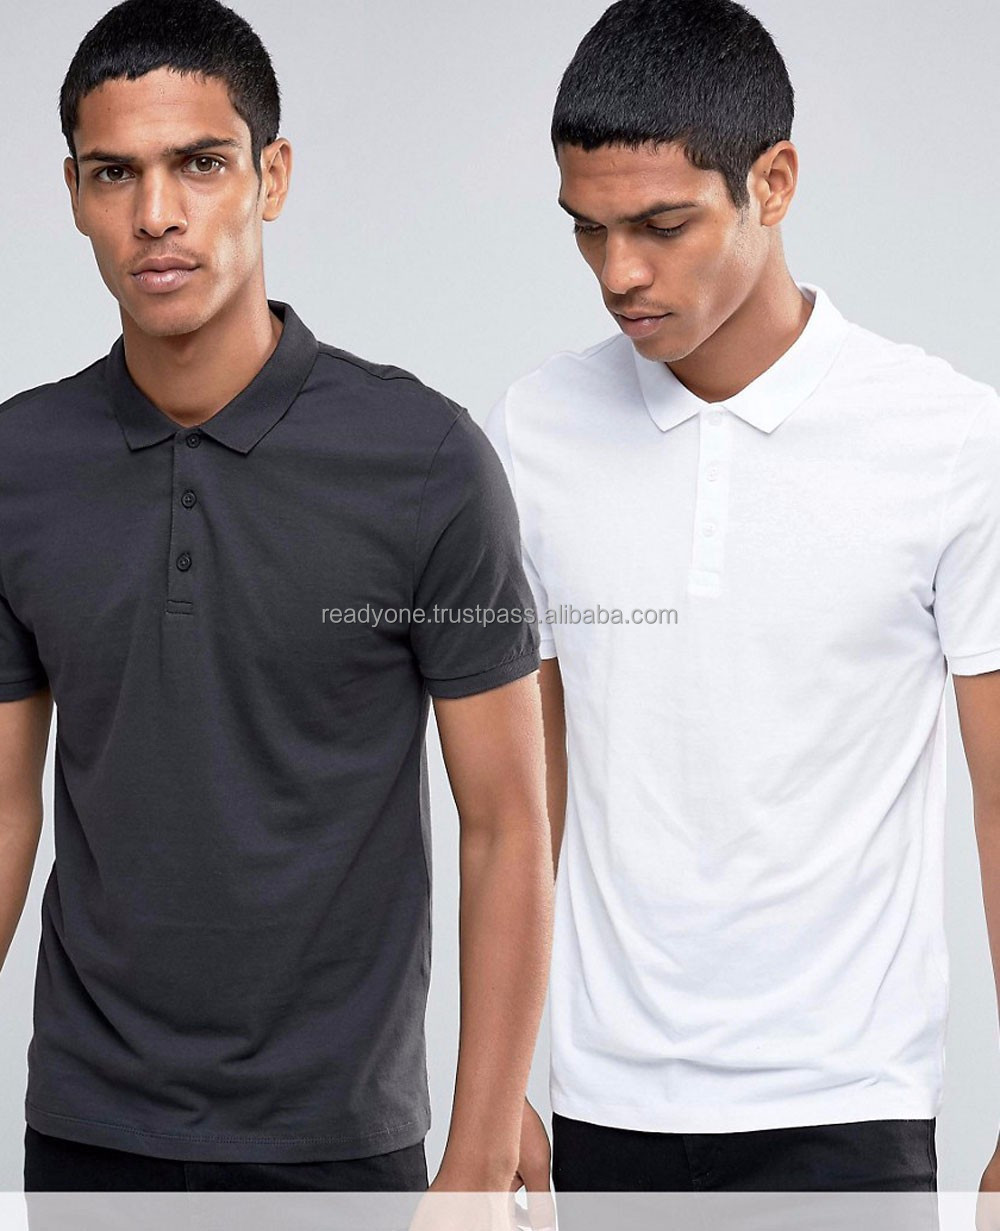 No Label Polo Shirt Manpolyester Spandex Polo Shirt Buy Summer